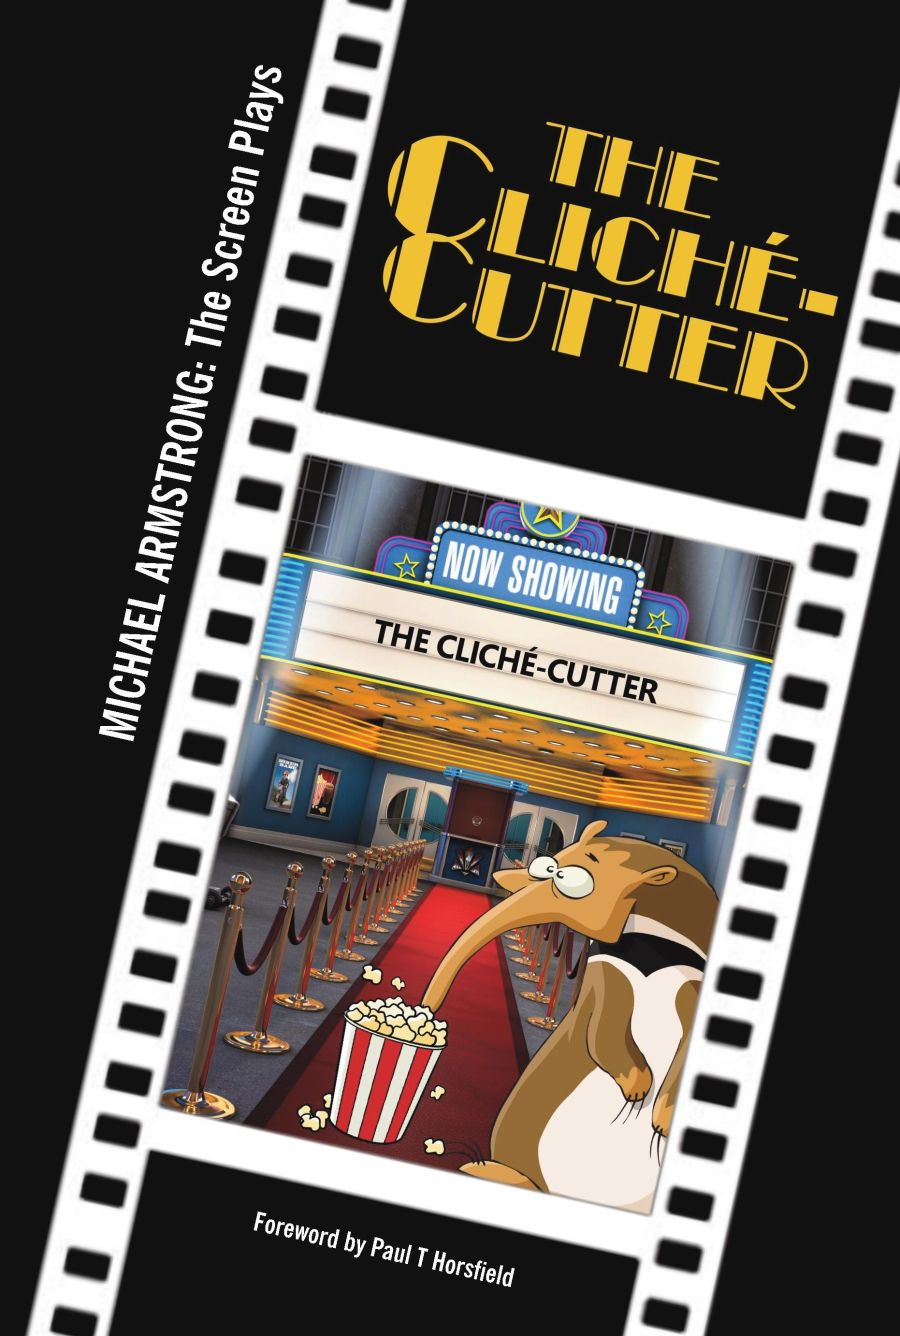 The Cliche-Cutter - Paperback